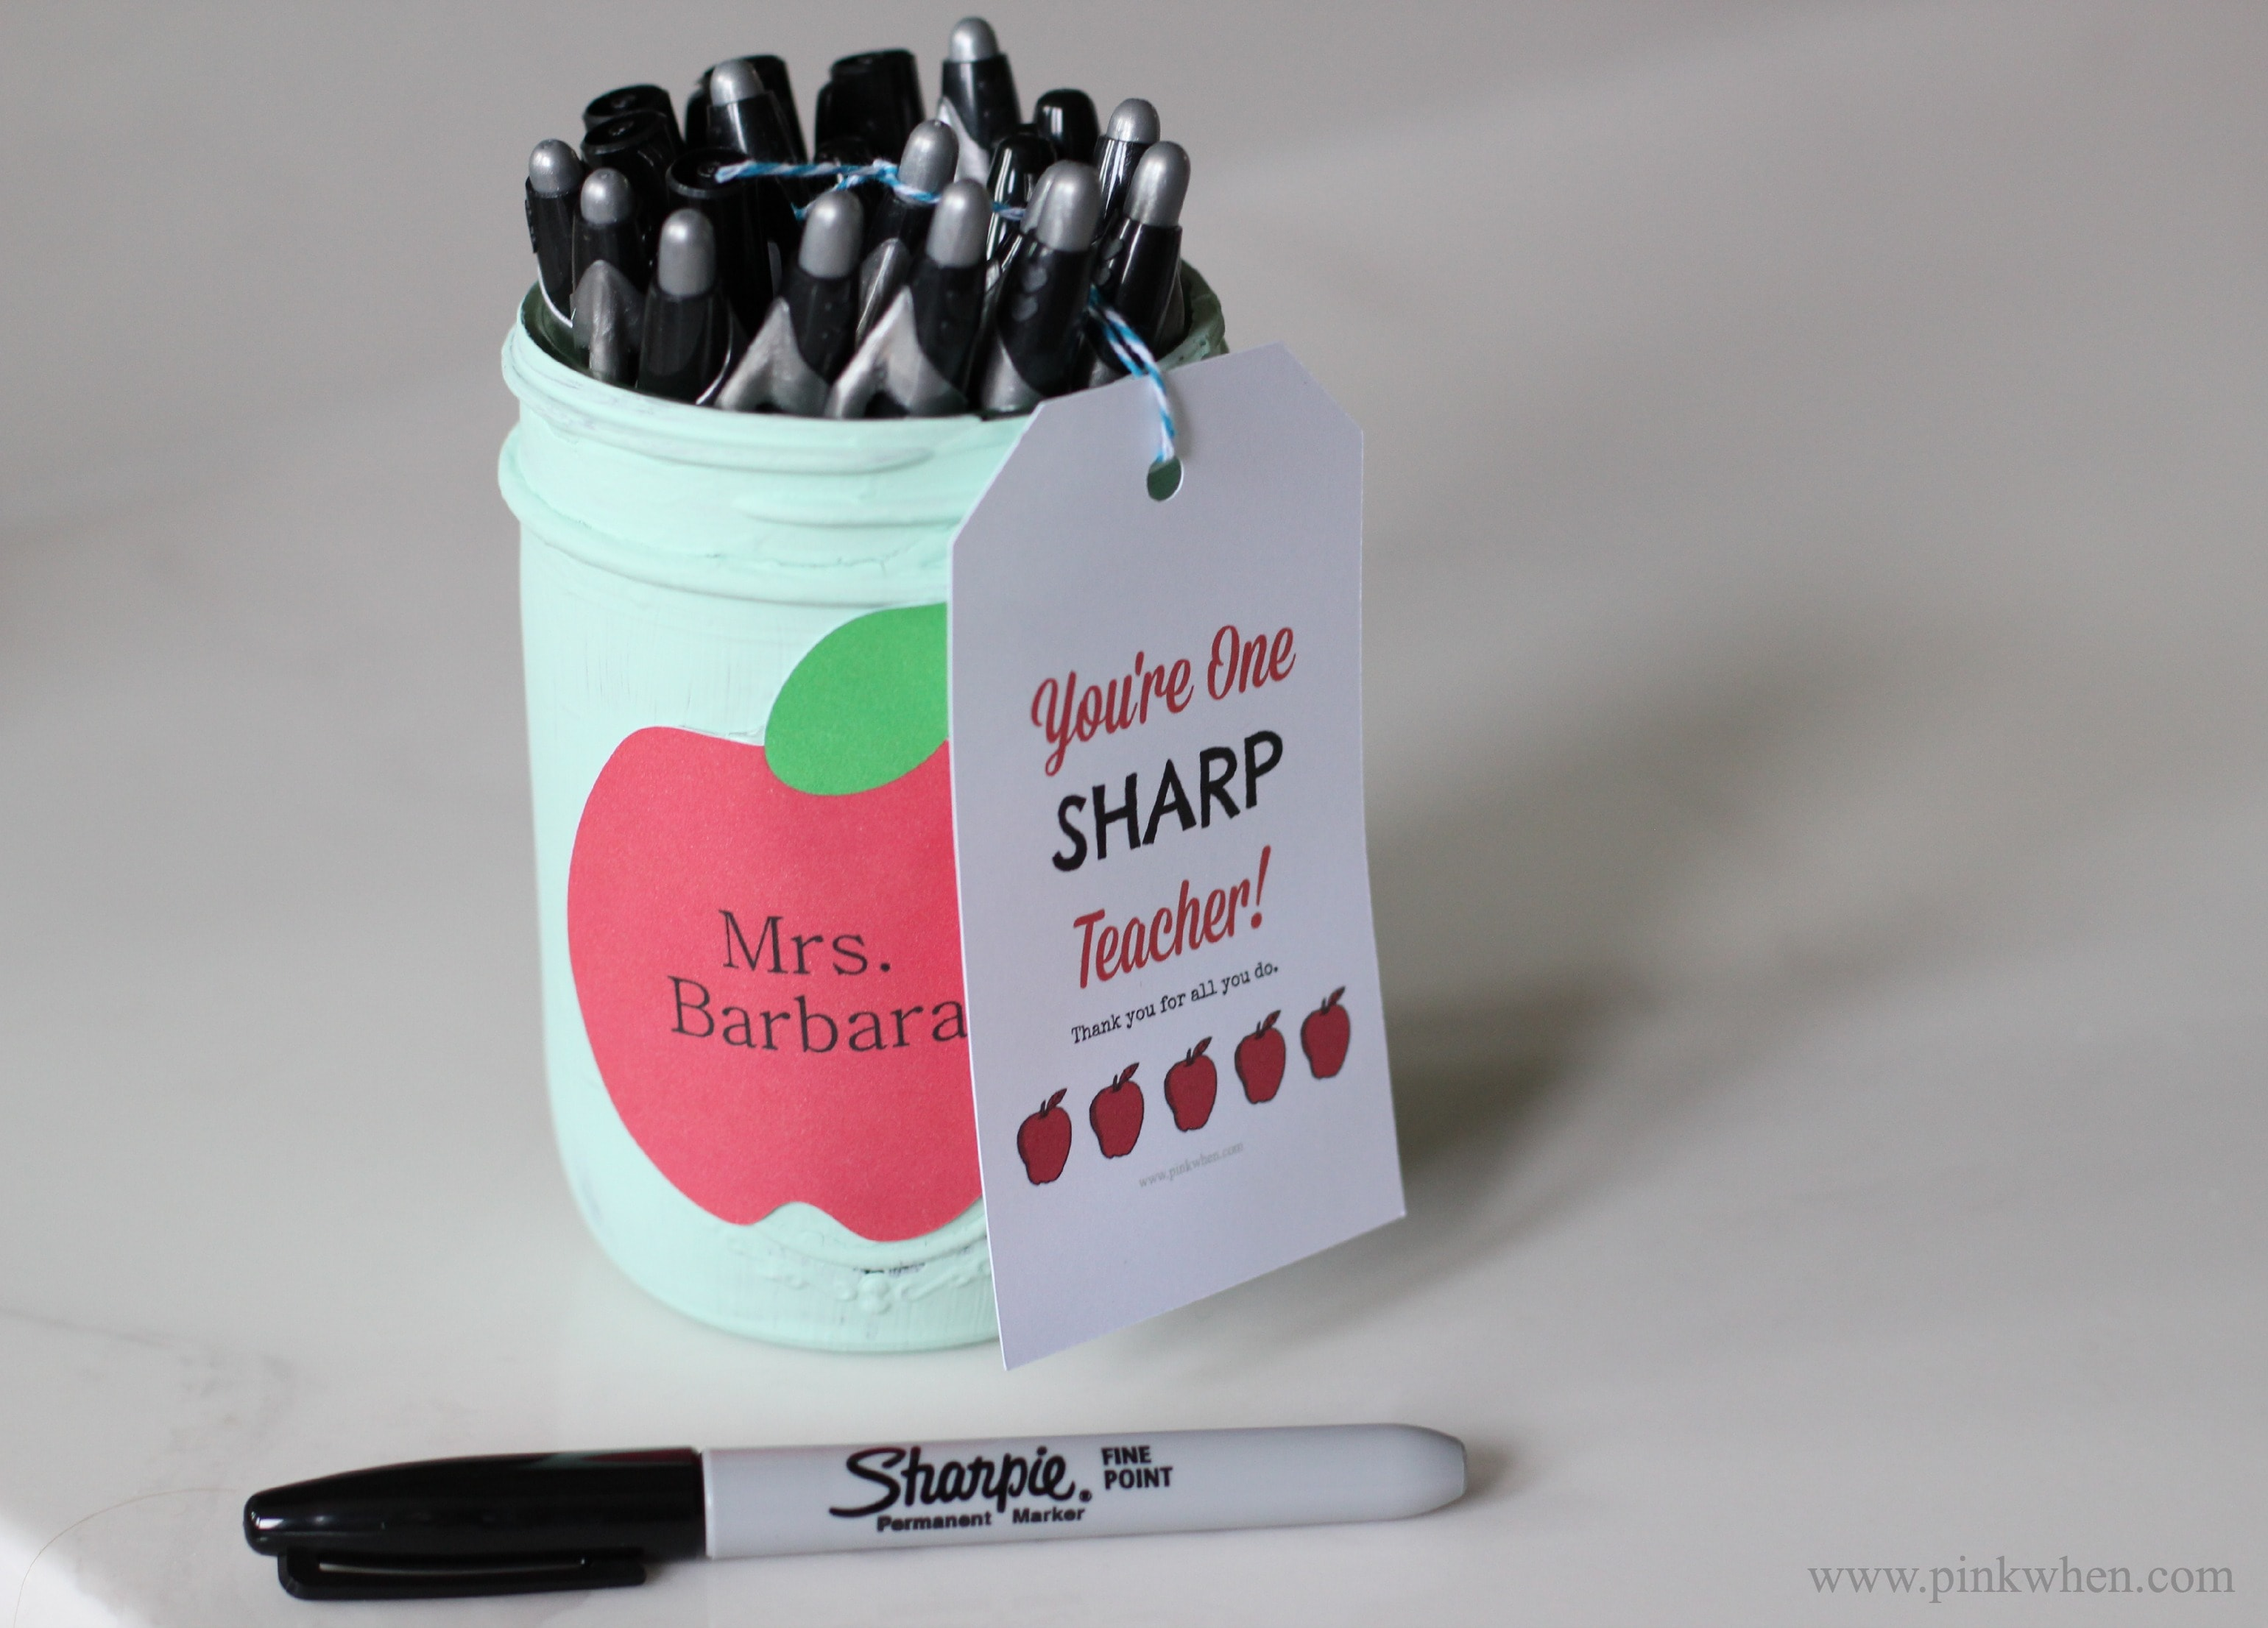 Sharp Teacher Gift